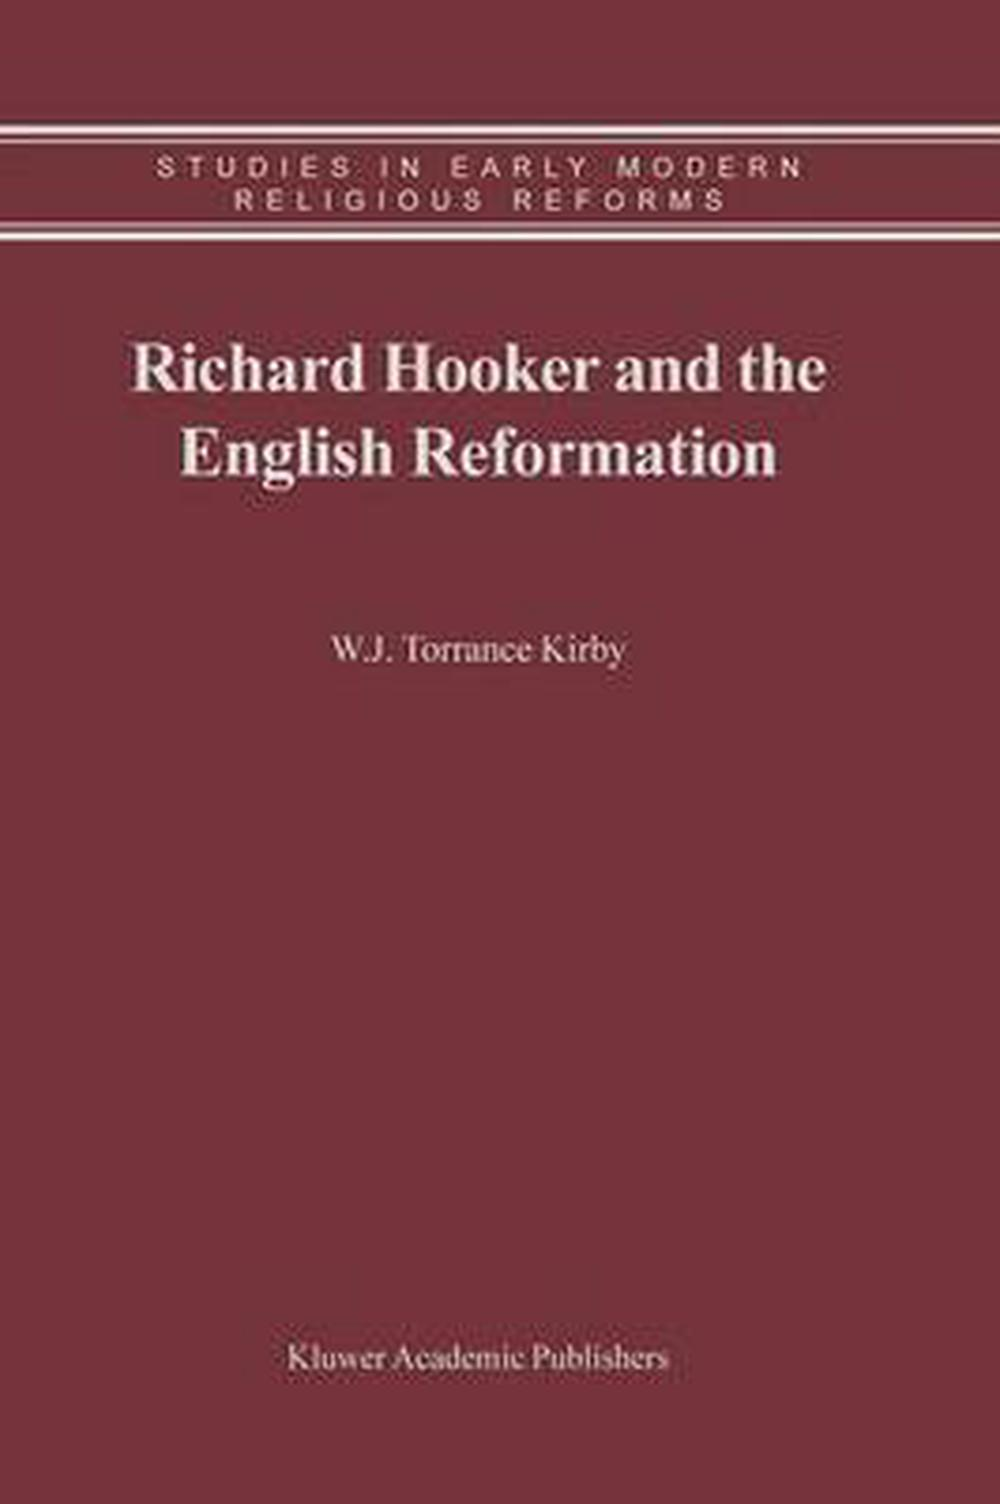 Richard Hooker and the English Reformation (Studies in Early Modern Religious Reforms)